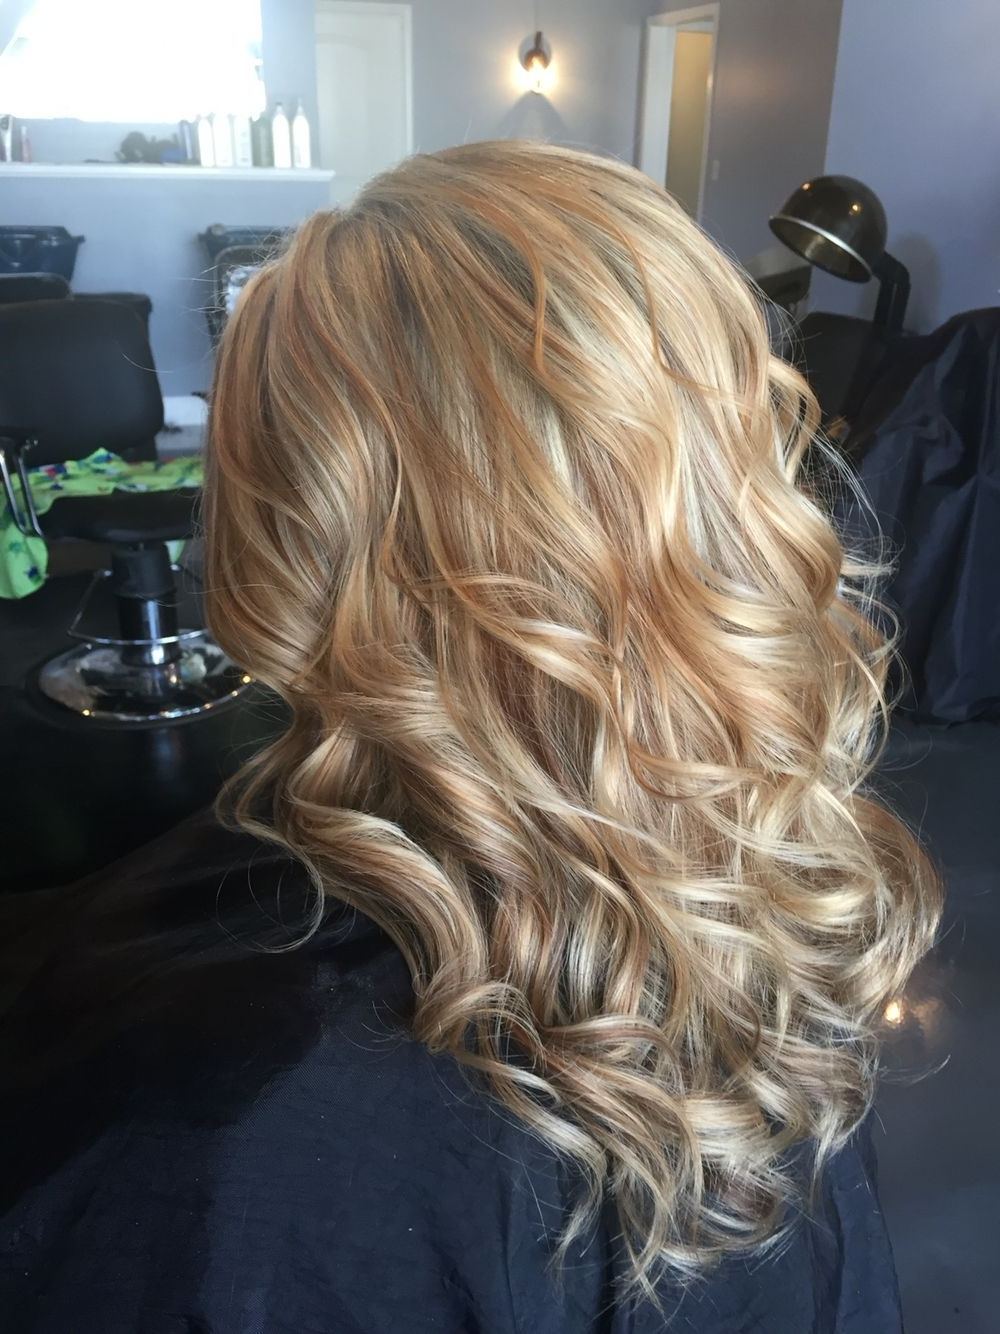 White Blonde Highlighted With Warm Caramel And Coffee Accents Pertaining To Well Liked Warm Blonde Curls Blonde Hairstyles (View 20 of 20)